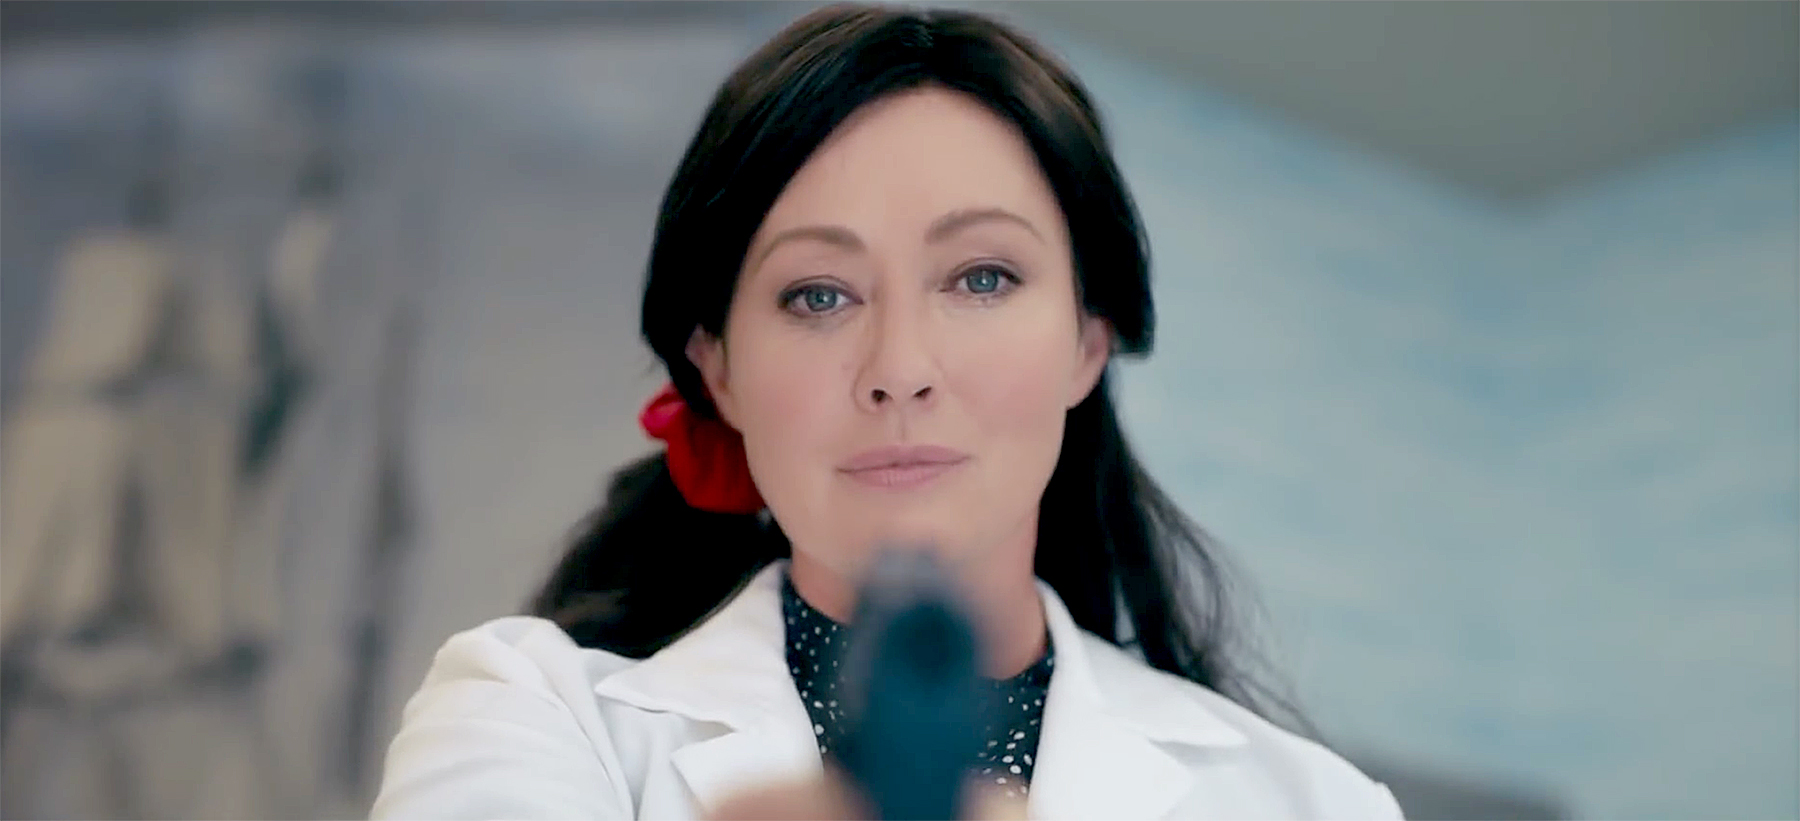 Talented actress Shannen Doherty: Cancer does not scare me, frightens the unknown